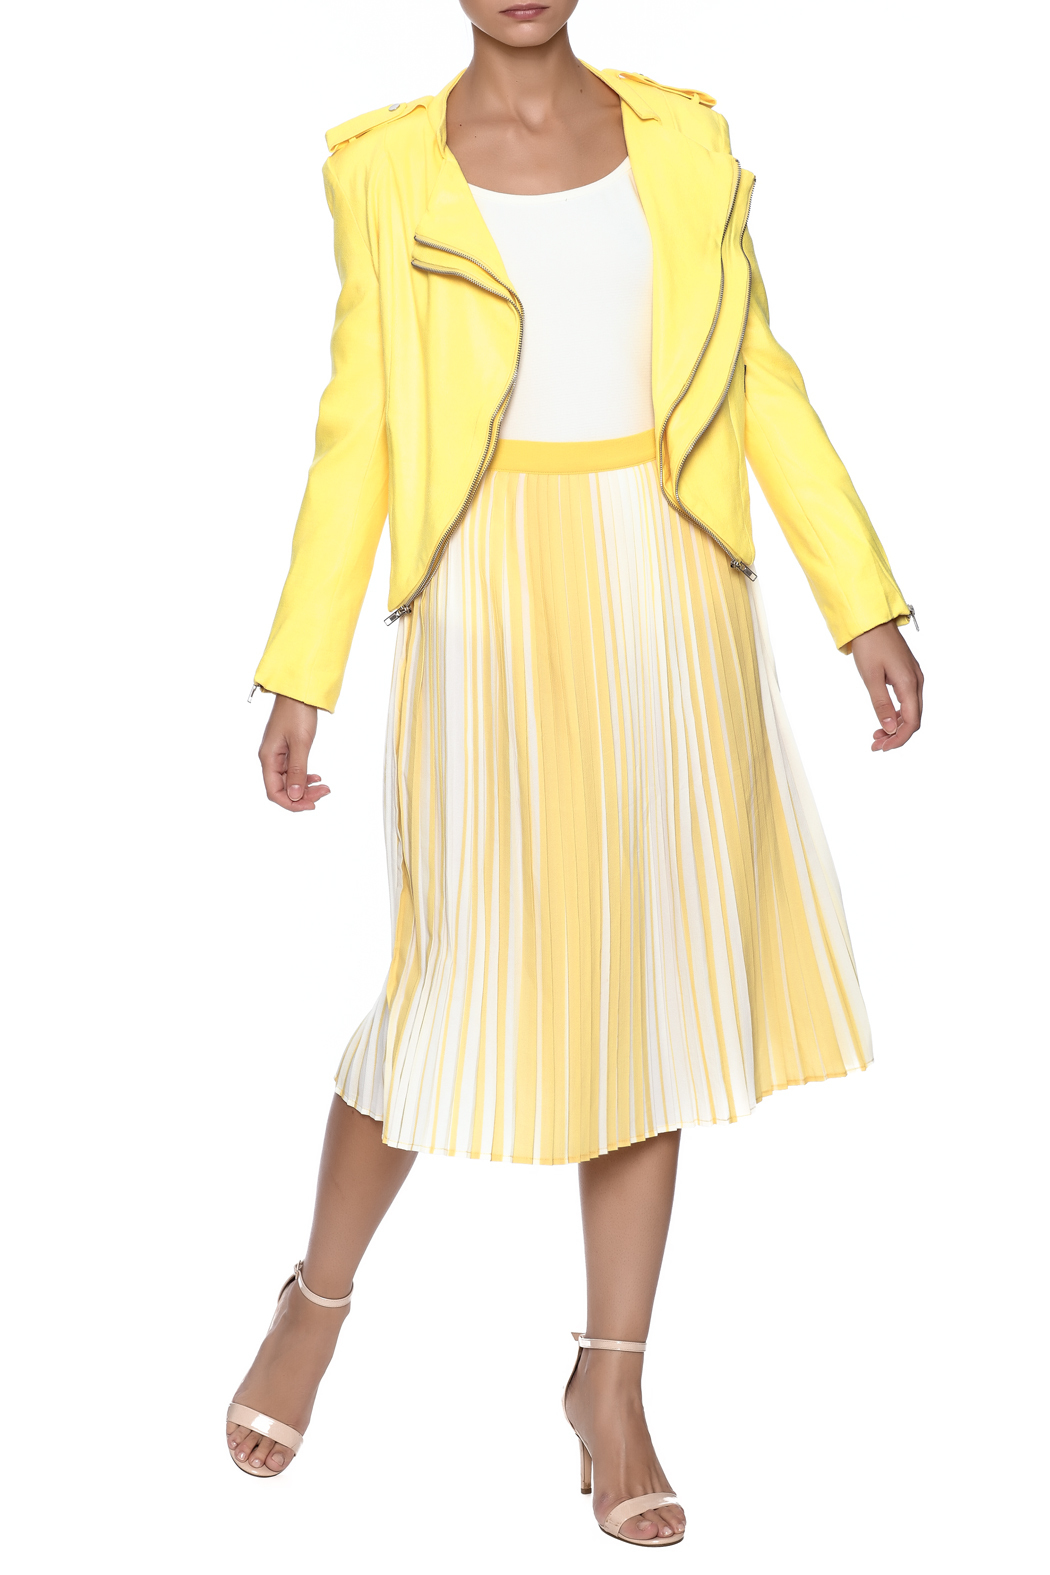 lily white Yellow Striped Skirt - Front Full Image